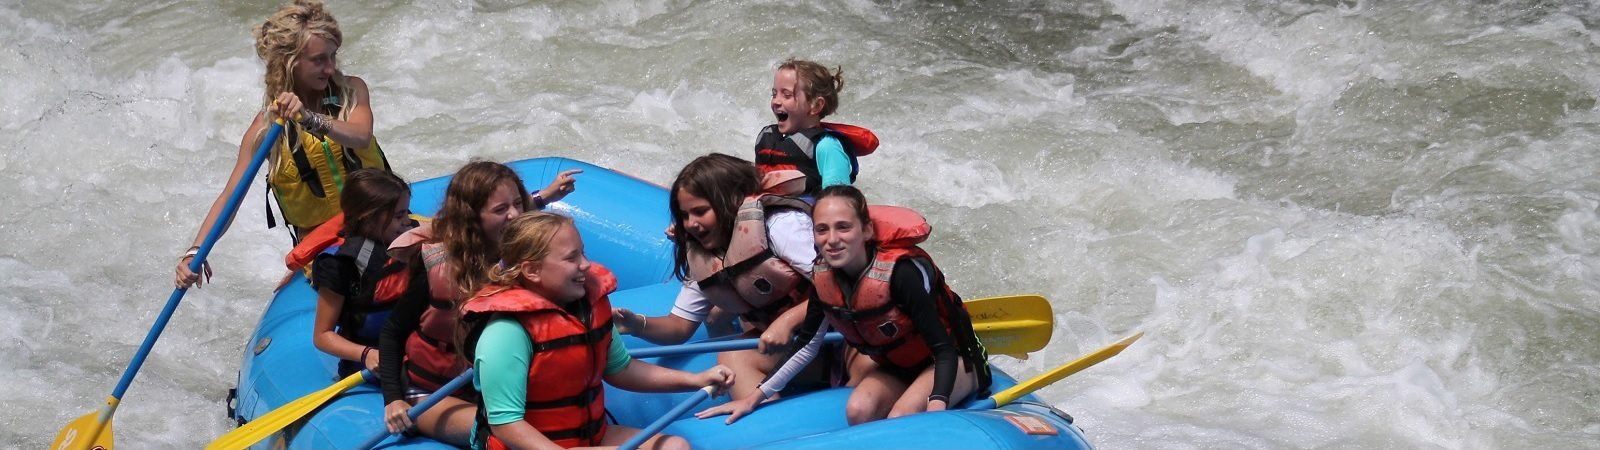 Guided Nantahala River Rafting